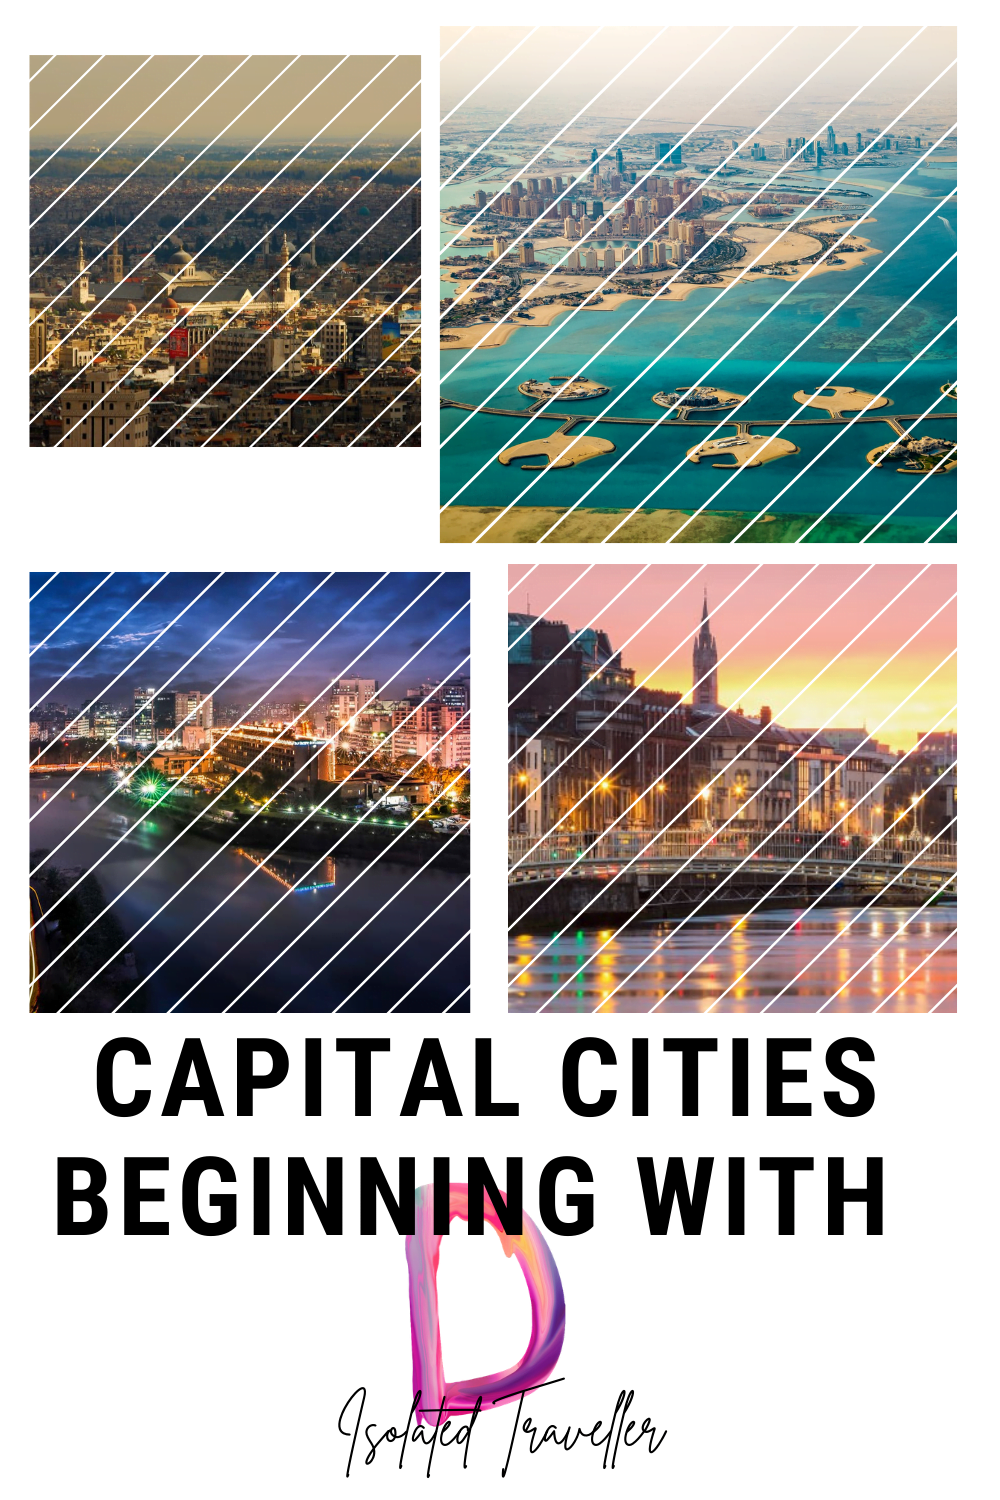 Capital Cities beginning with D